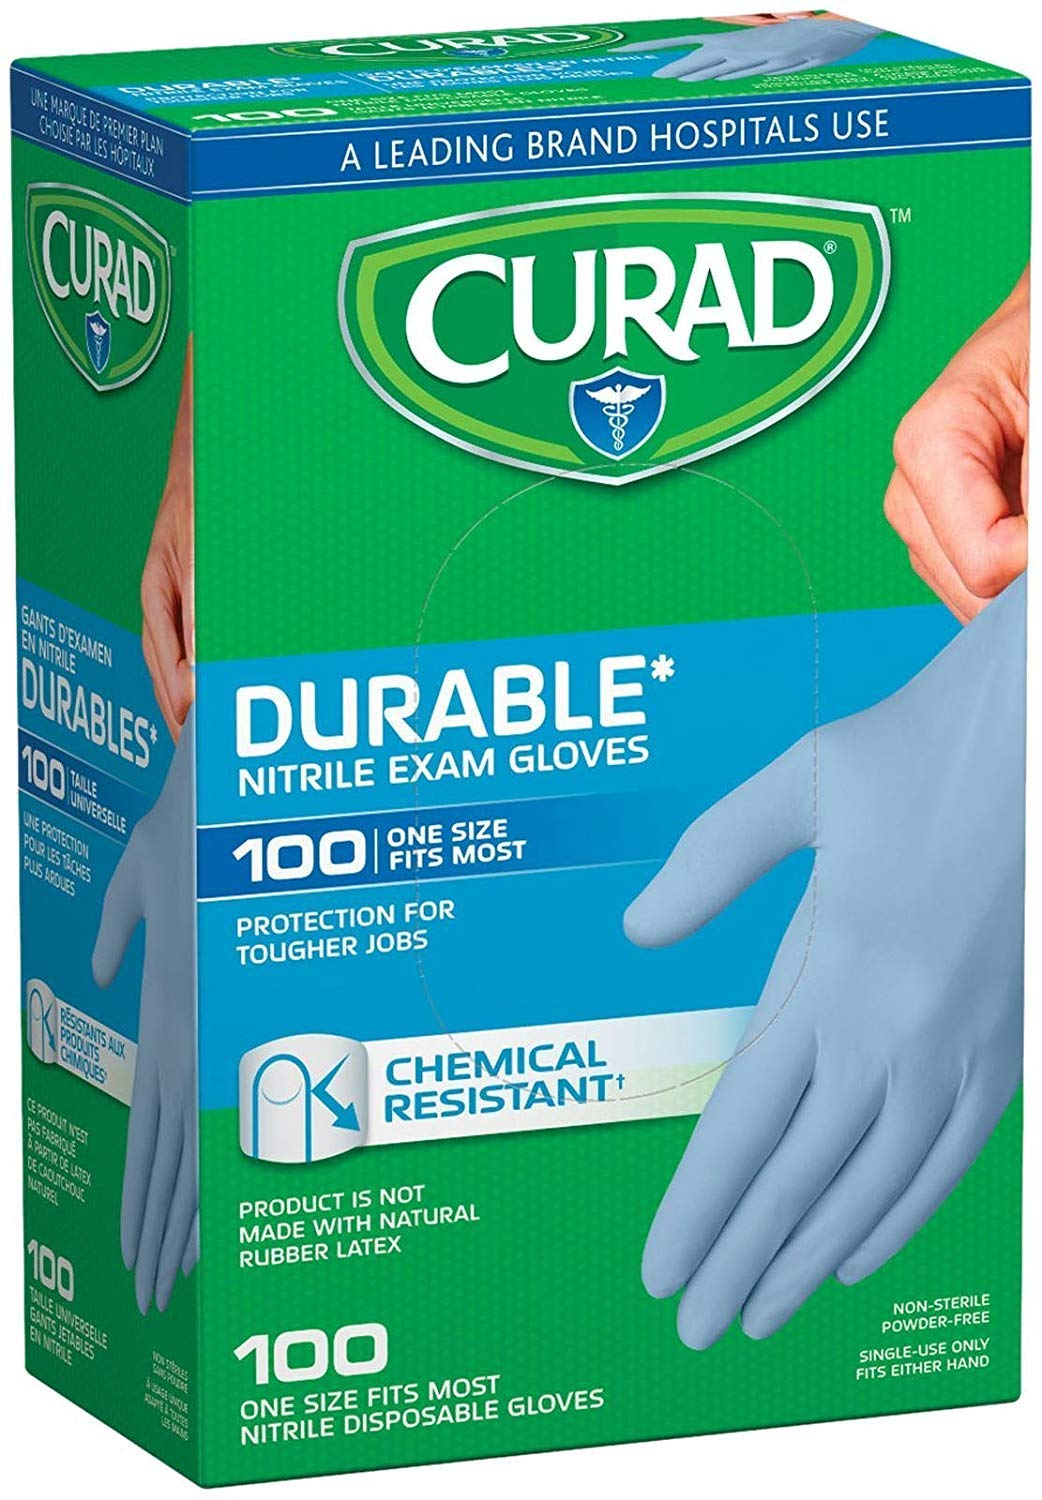 Curad Nitrile Disposable Exam Gloves, Durable and Chemical Resistant, Powder Free, One Size Fits Most (100 Count), Great for First aid, Medical use, Cleaning, pet Care (3)